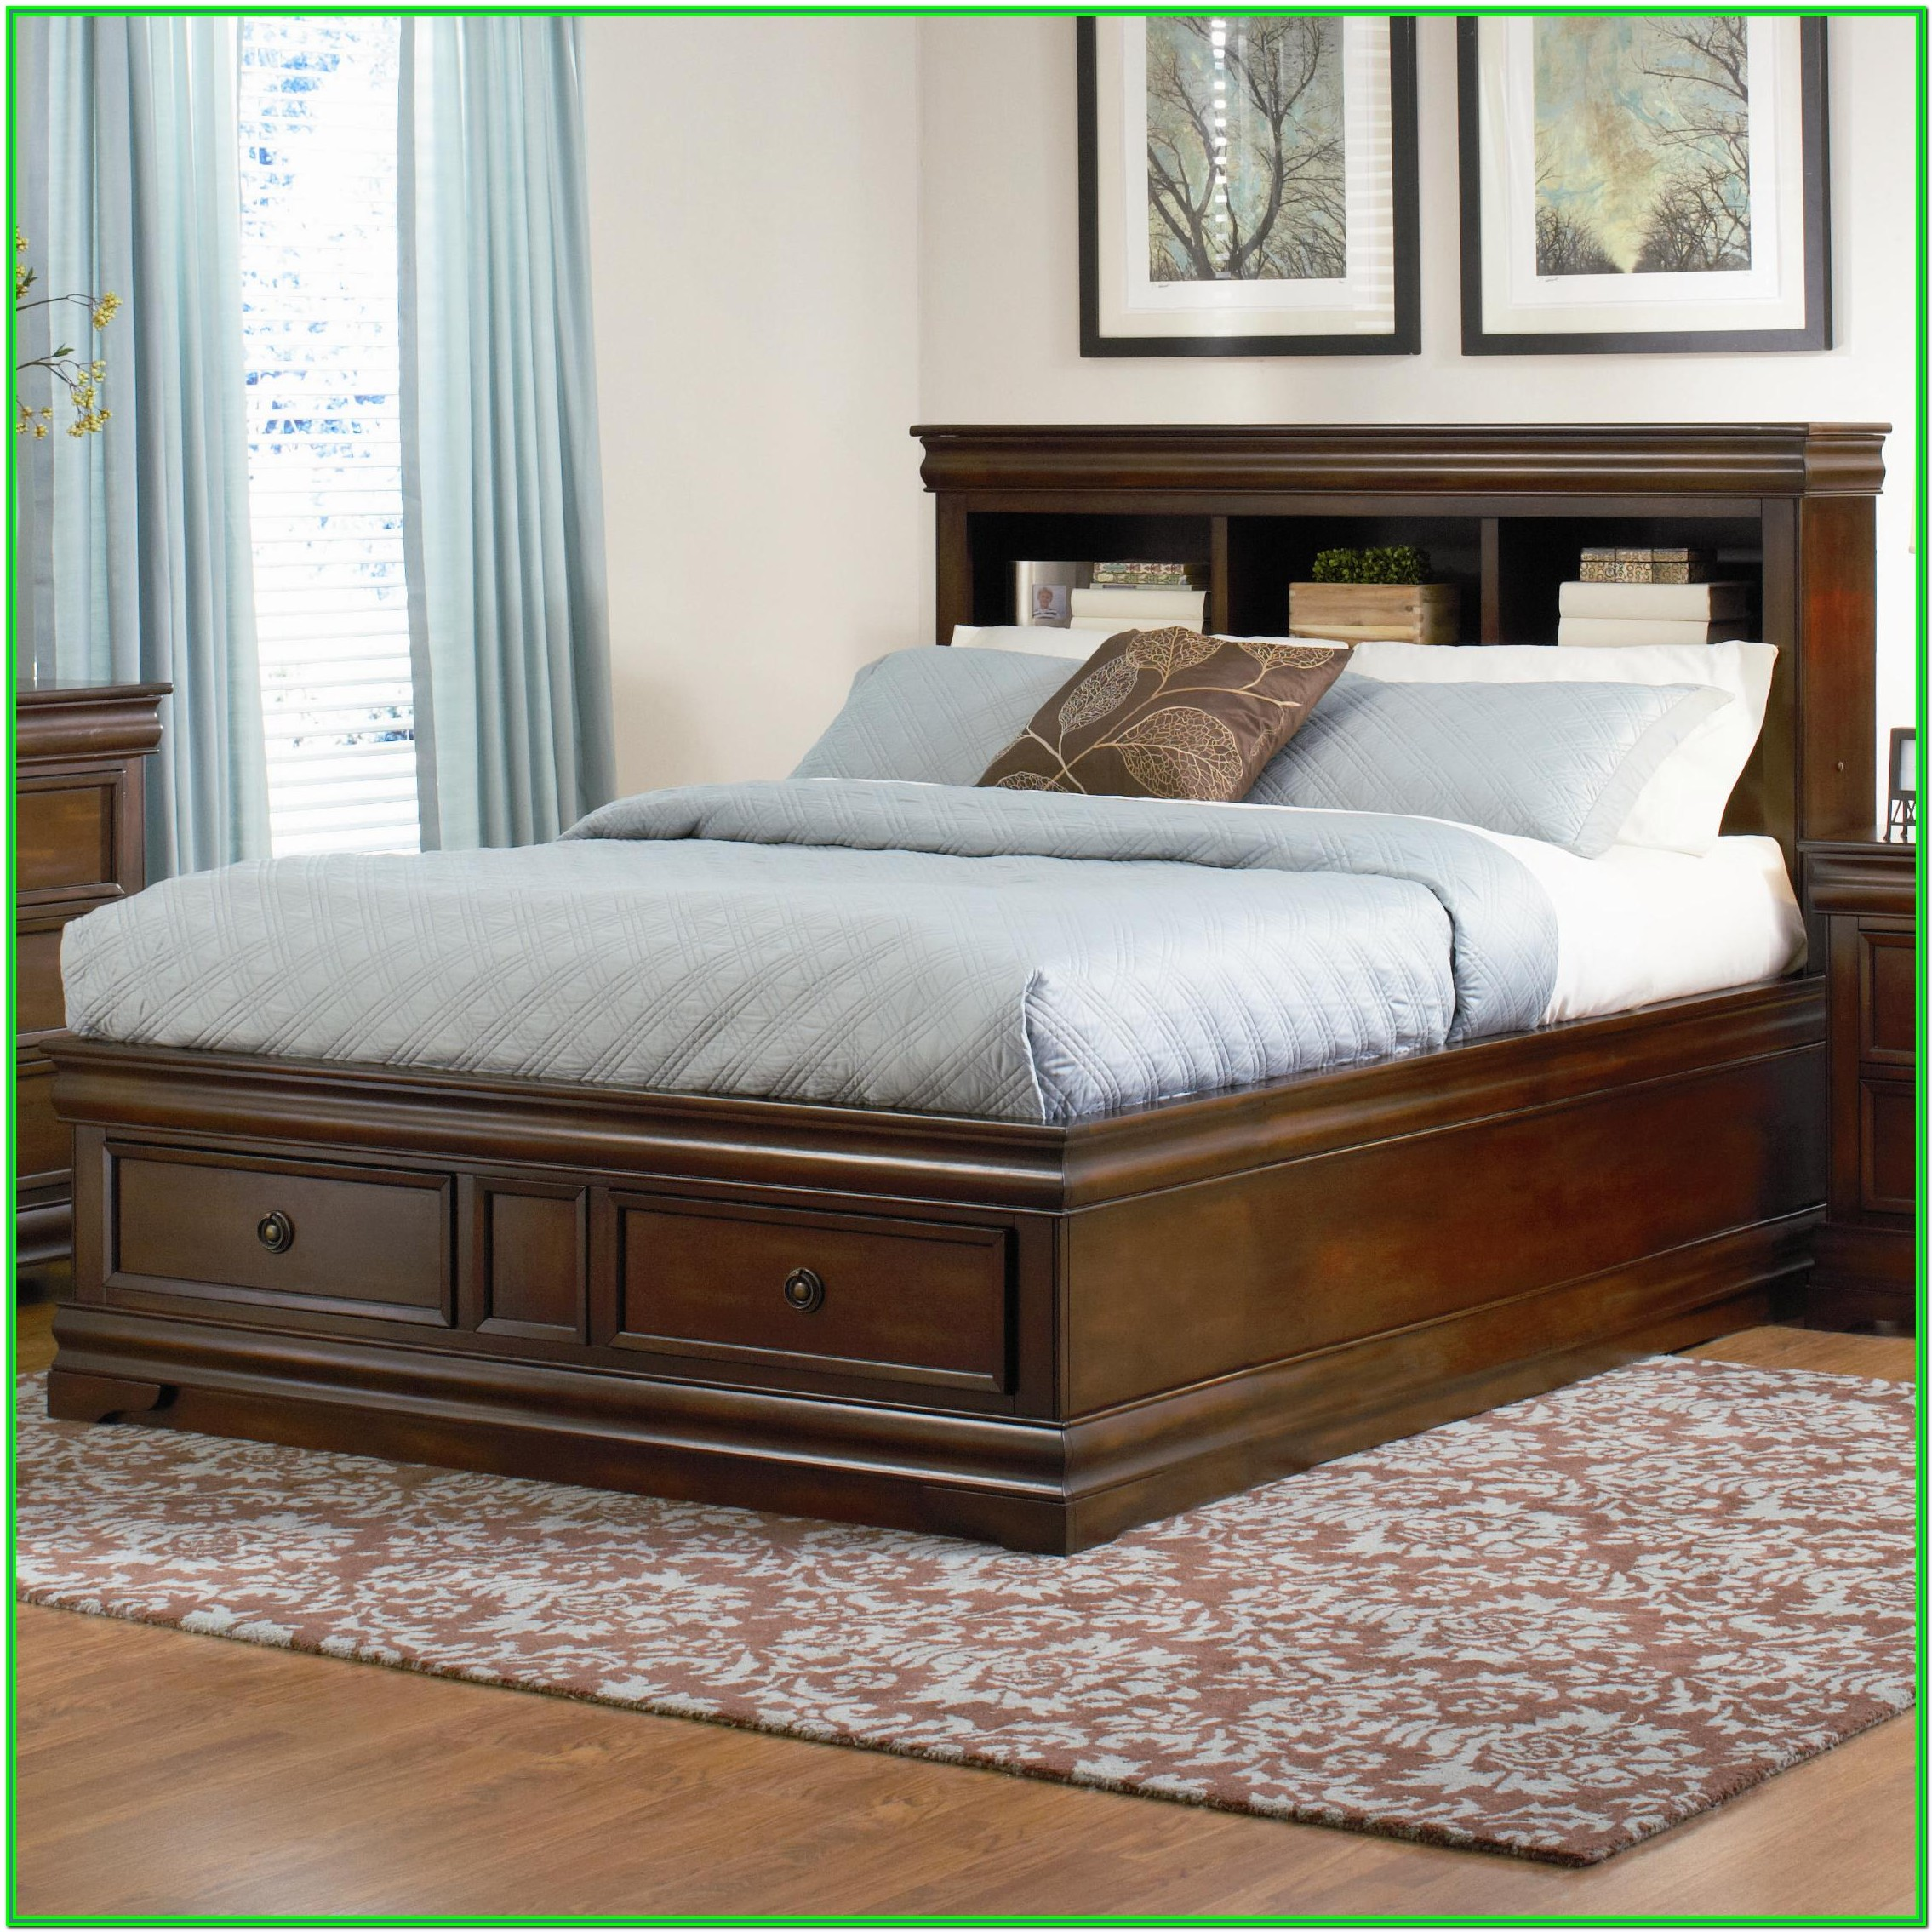 King Size Bed Frame With Storage Underneath Diy